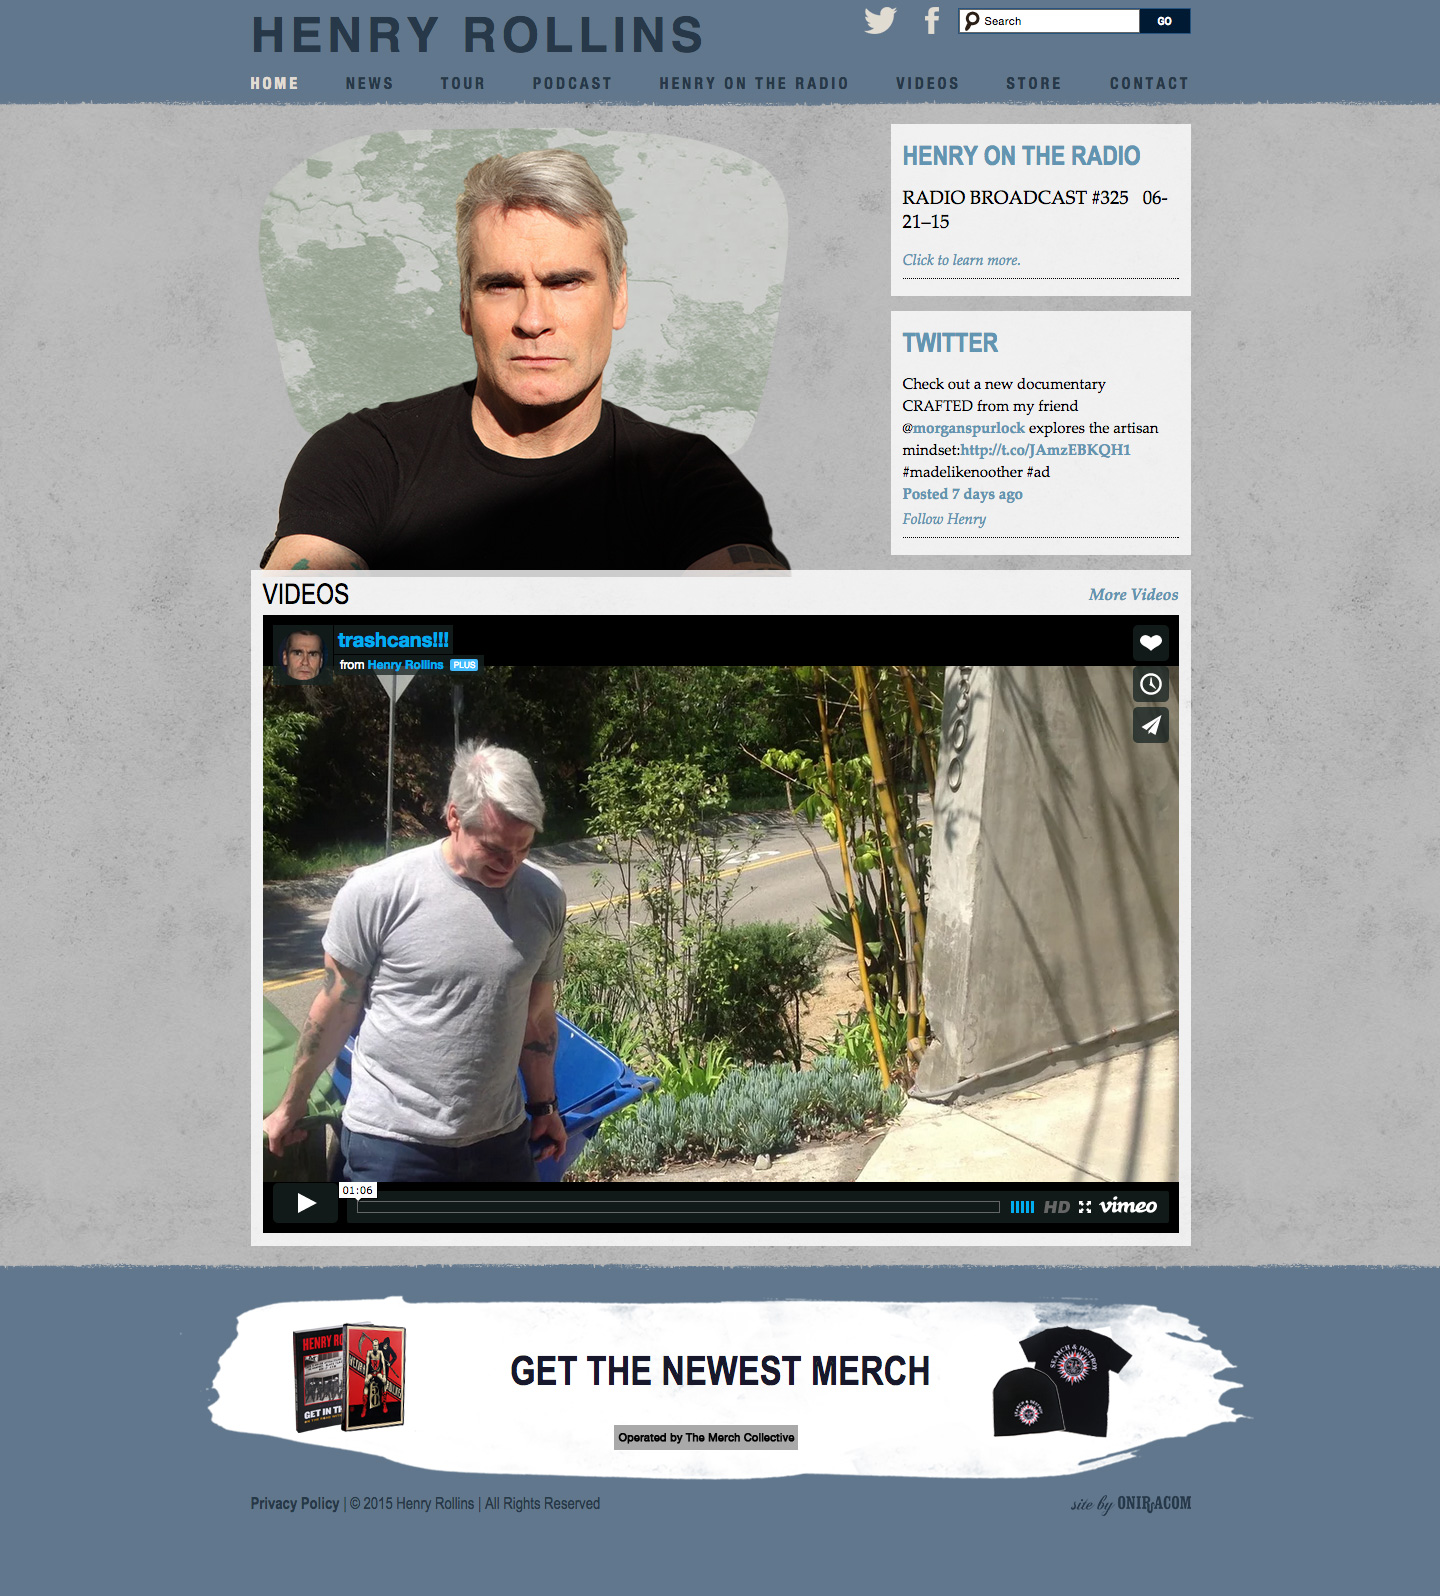 Henry Rollins website built by Aquatic in San Francisco